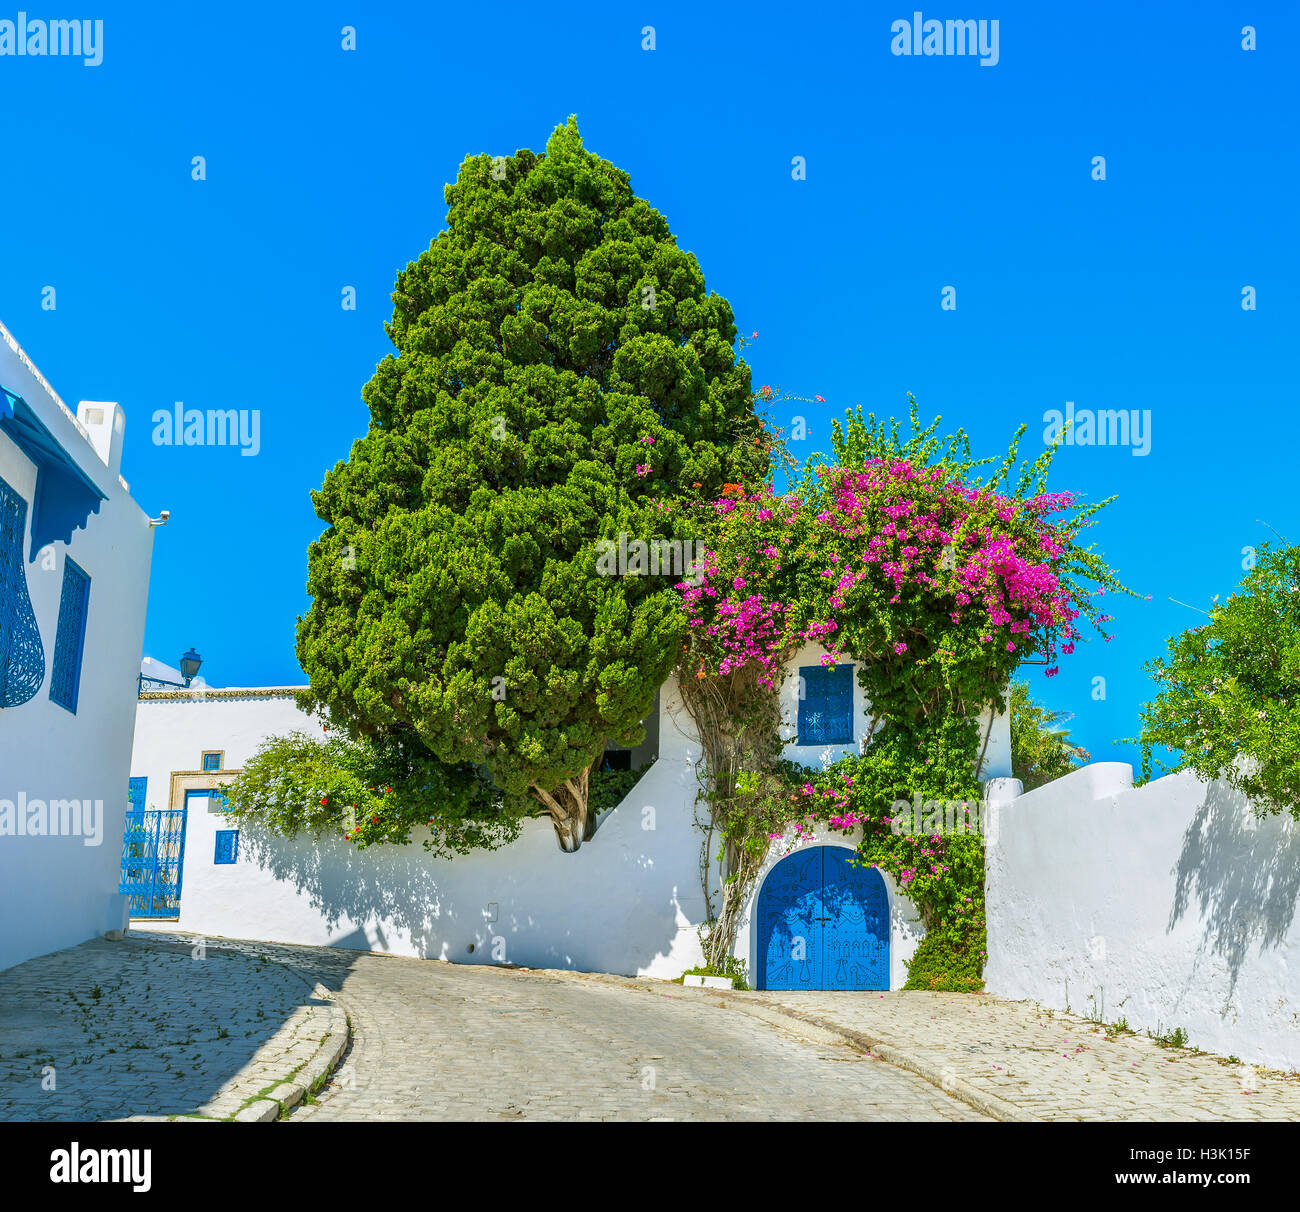 The village boasts perfectly landscaped gardens with many bright flowers and shady trees, Sidi Bou Said, Tunisia. - Stock Image